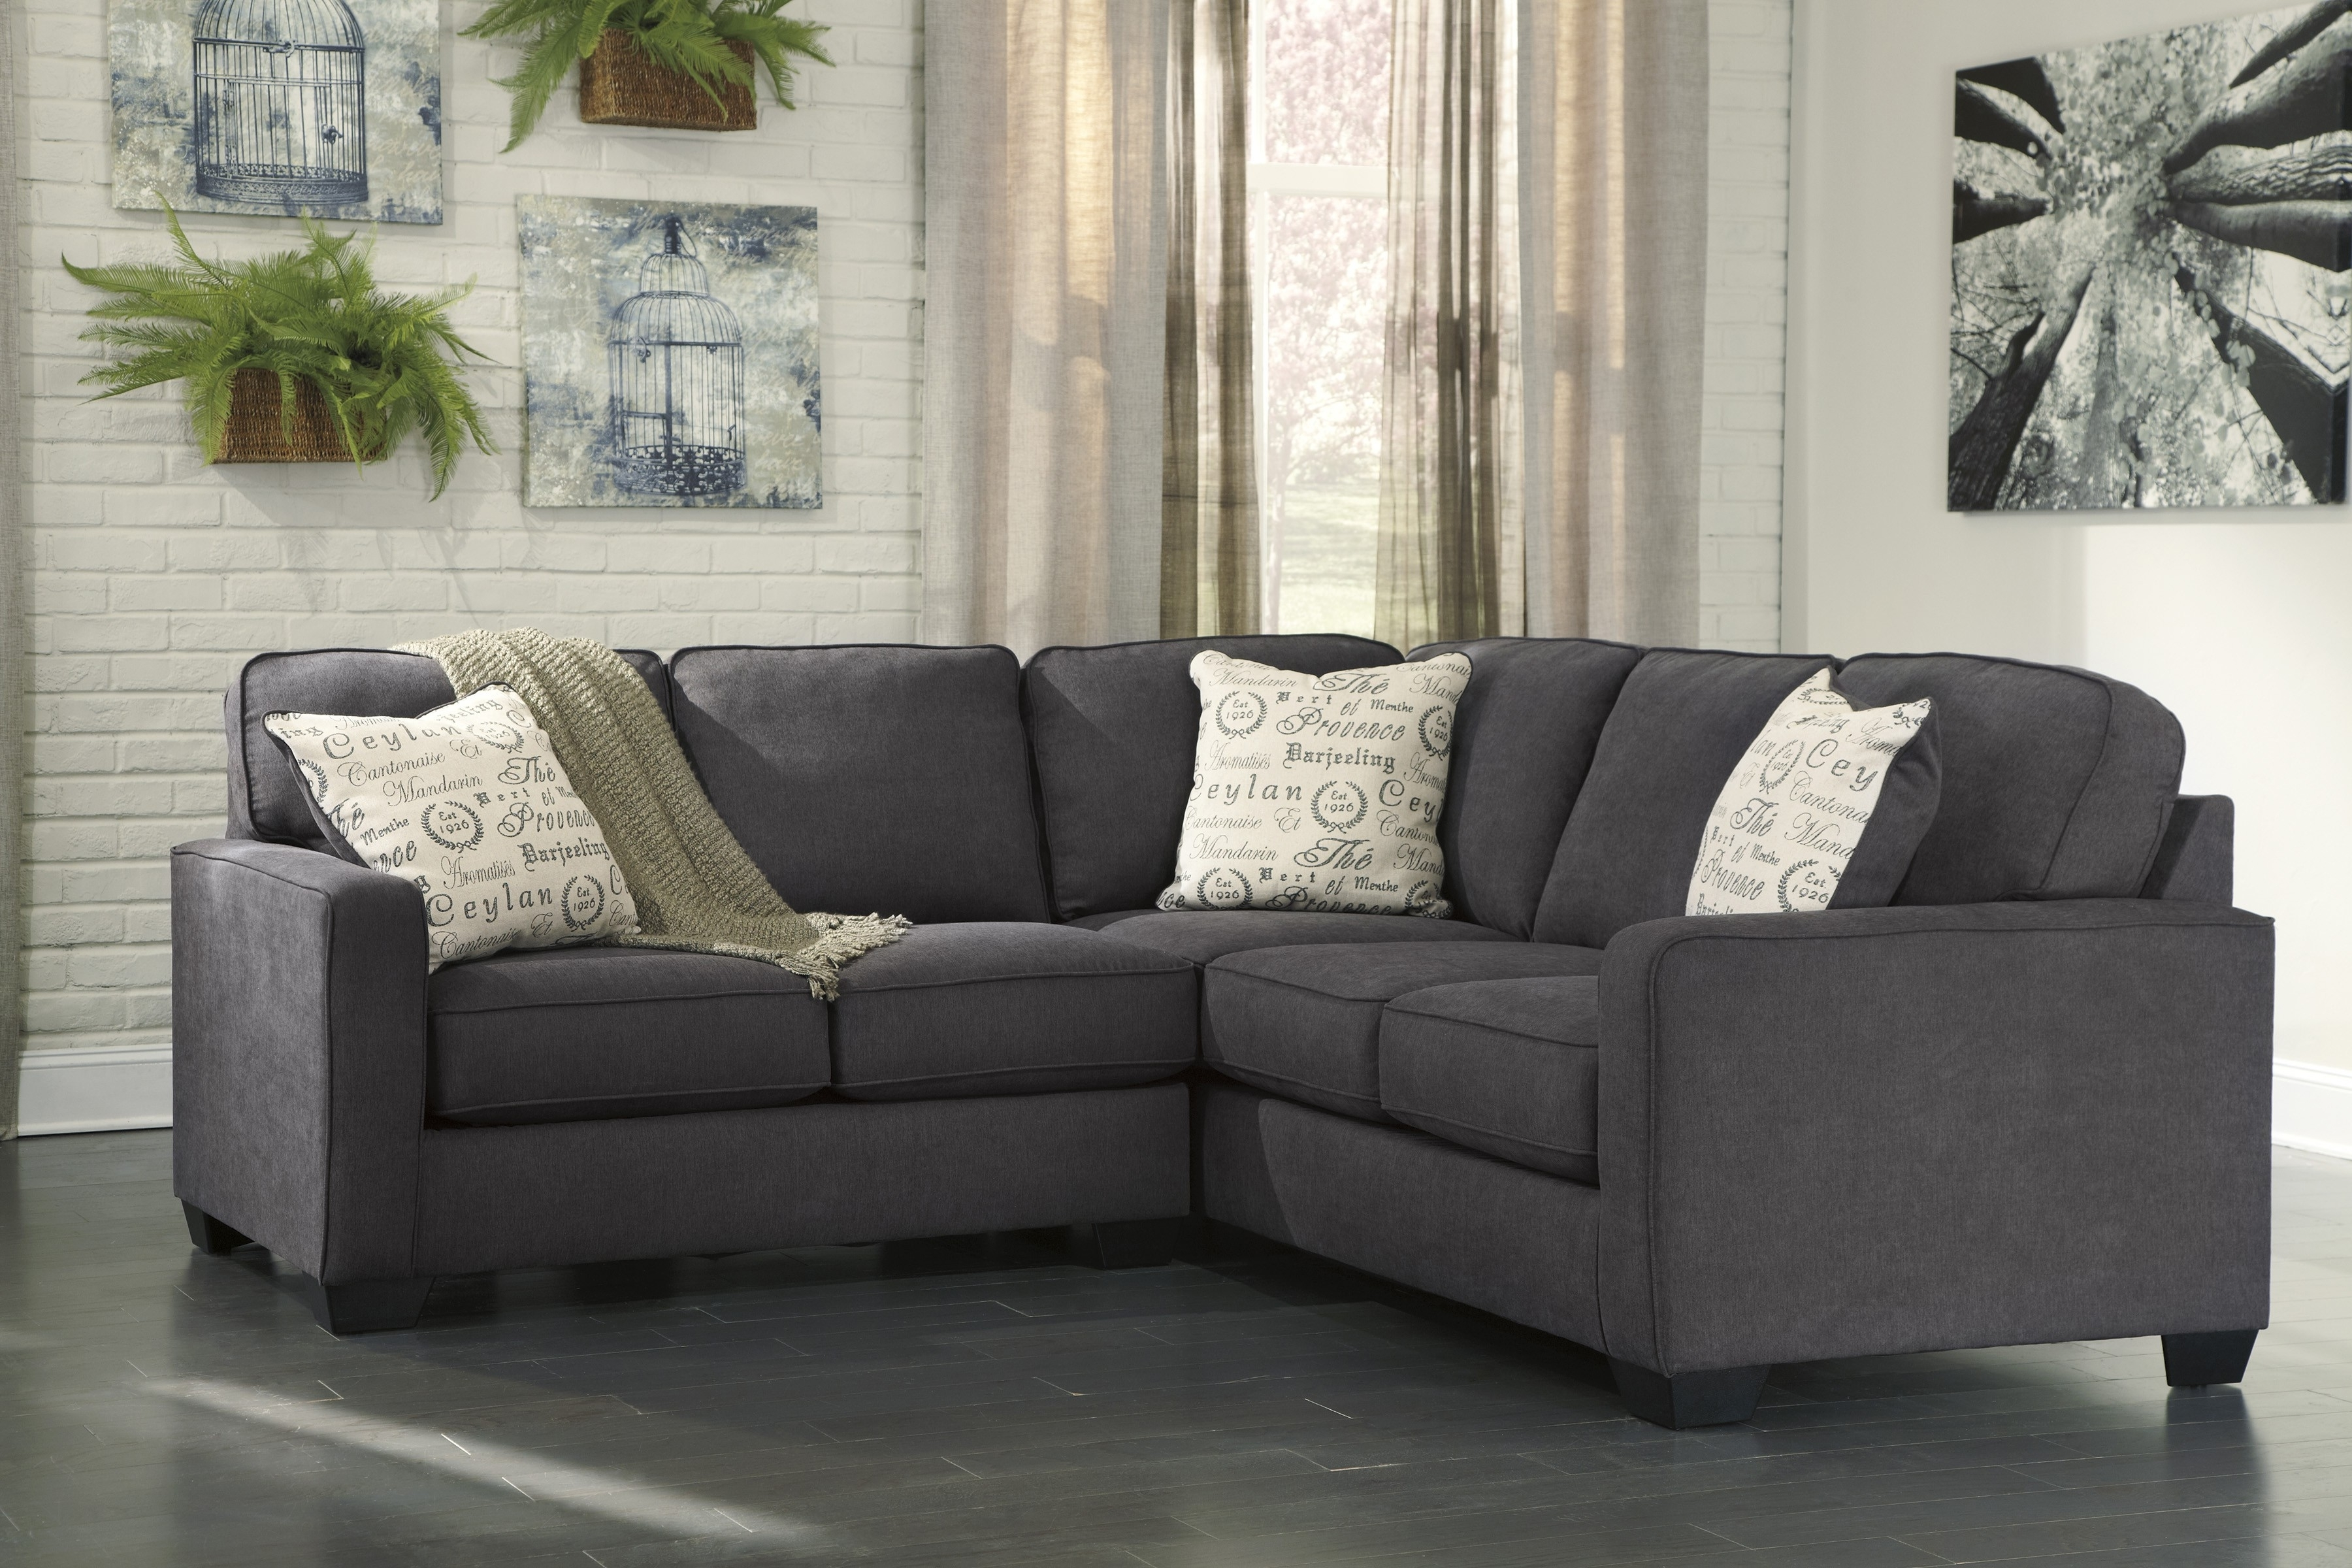 2017 Loveseats With Chaise Inside Alenya Charcoal 2 Piece Sectional Sofa For $ (View 14 of 15)